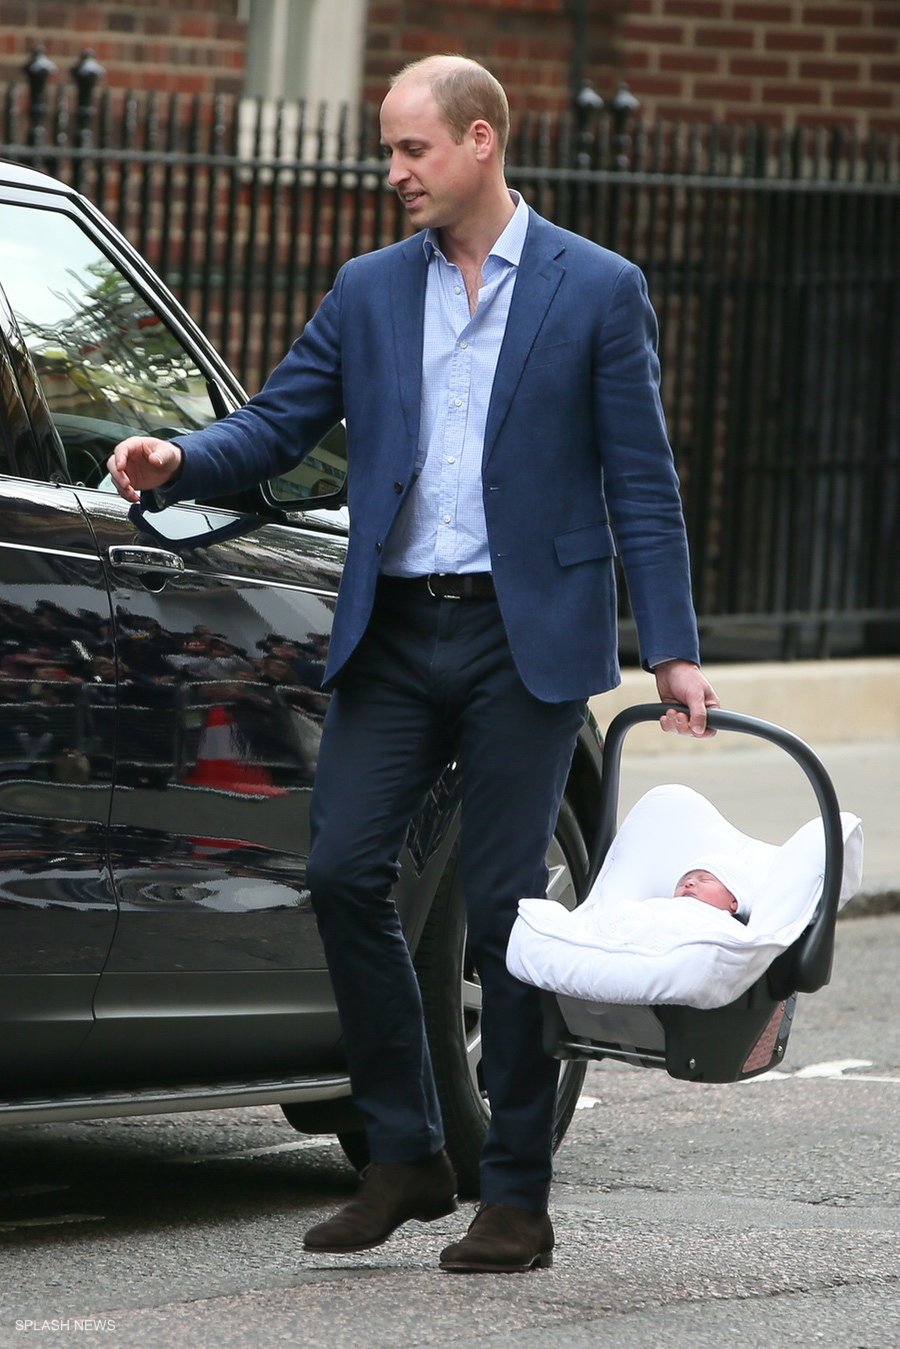 Prince William putting the new baby in the car